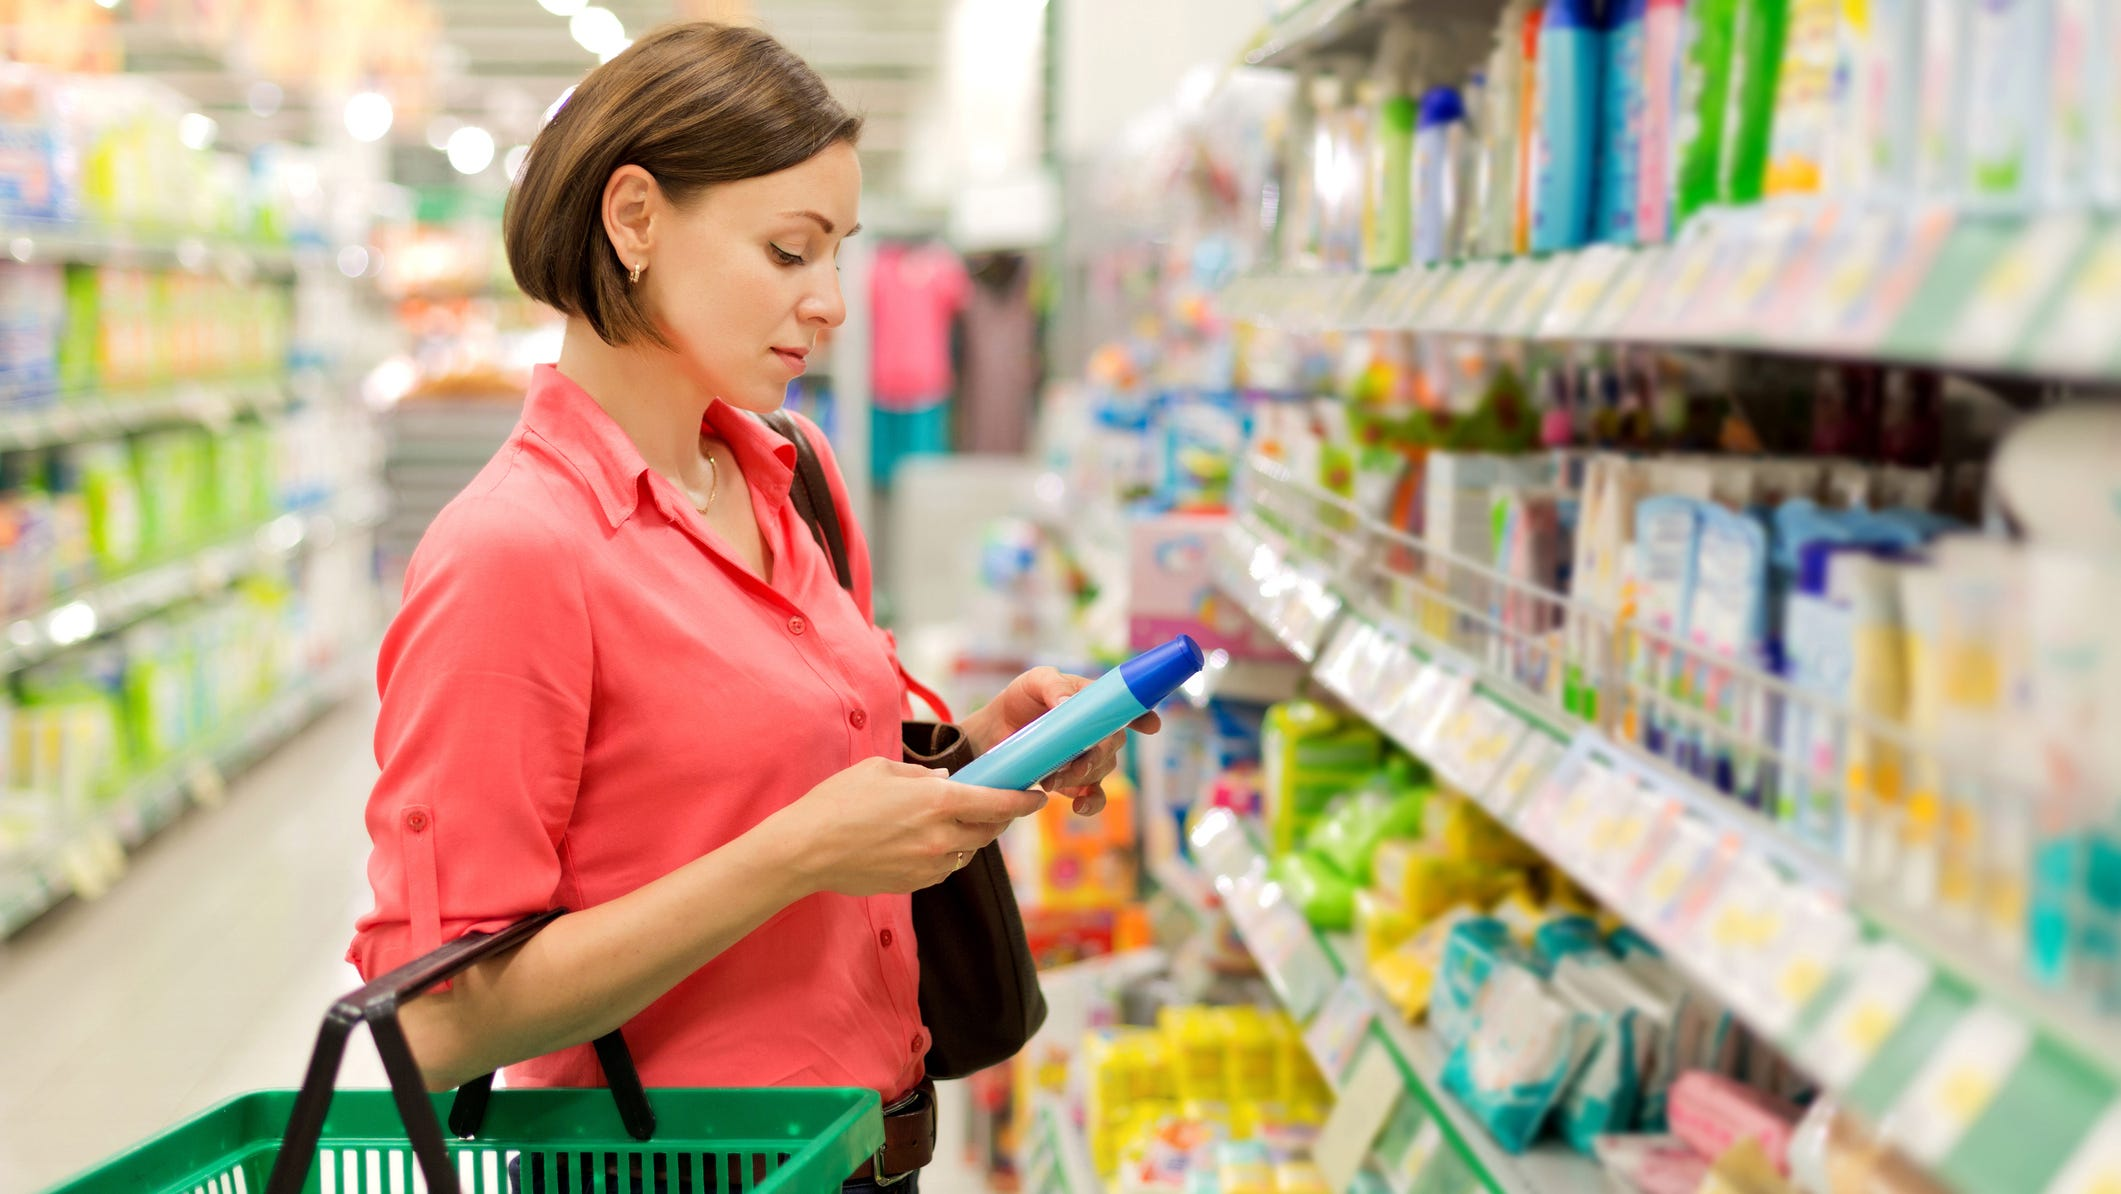 Is it safe to buy salon shampoo from drugstores?